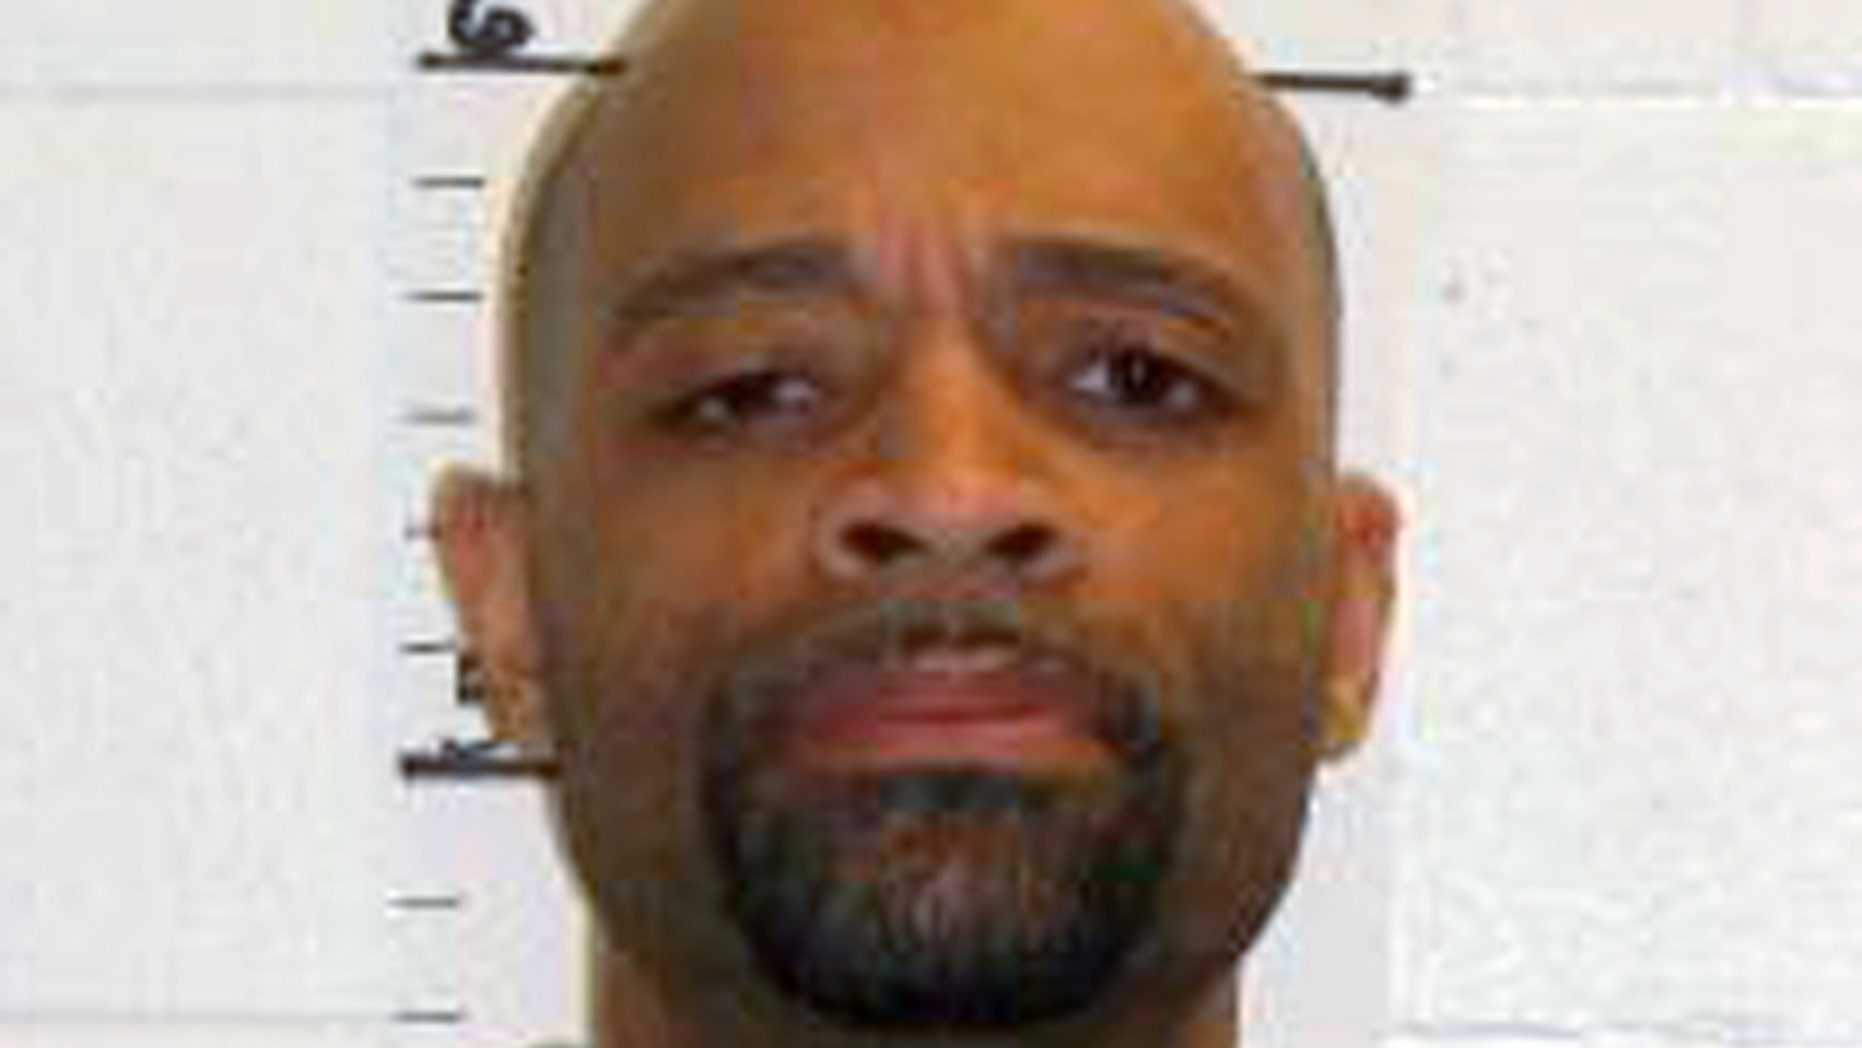 FILE - This file photo provided by the Missouri Department of Corrections shows inmate Earl Ringo Jr. (AP Photo/Missouri Department of Corrections, File)